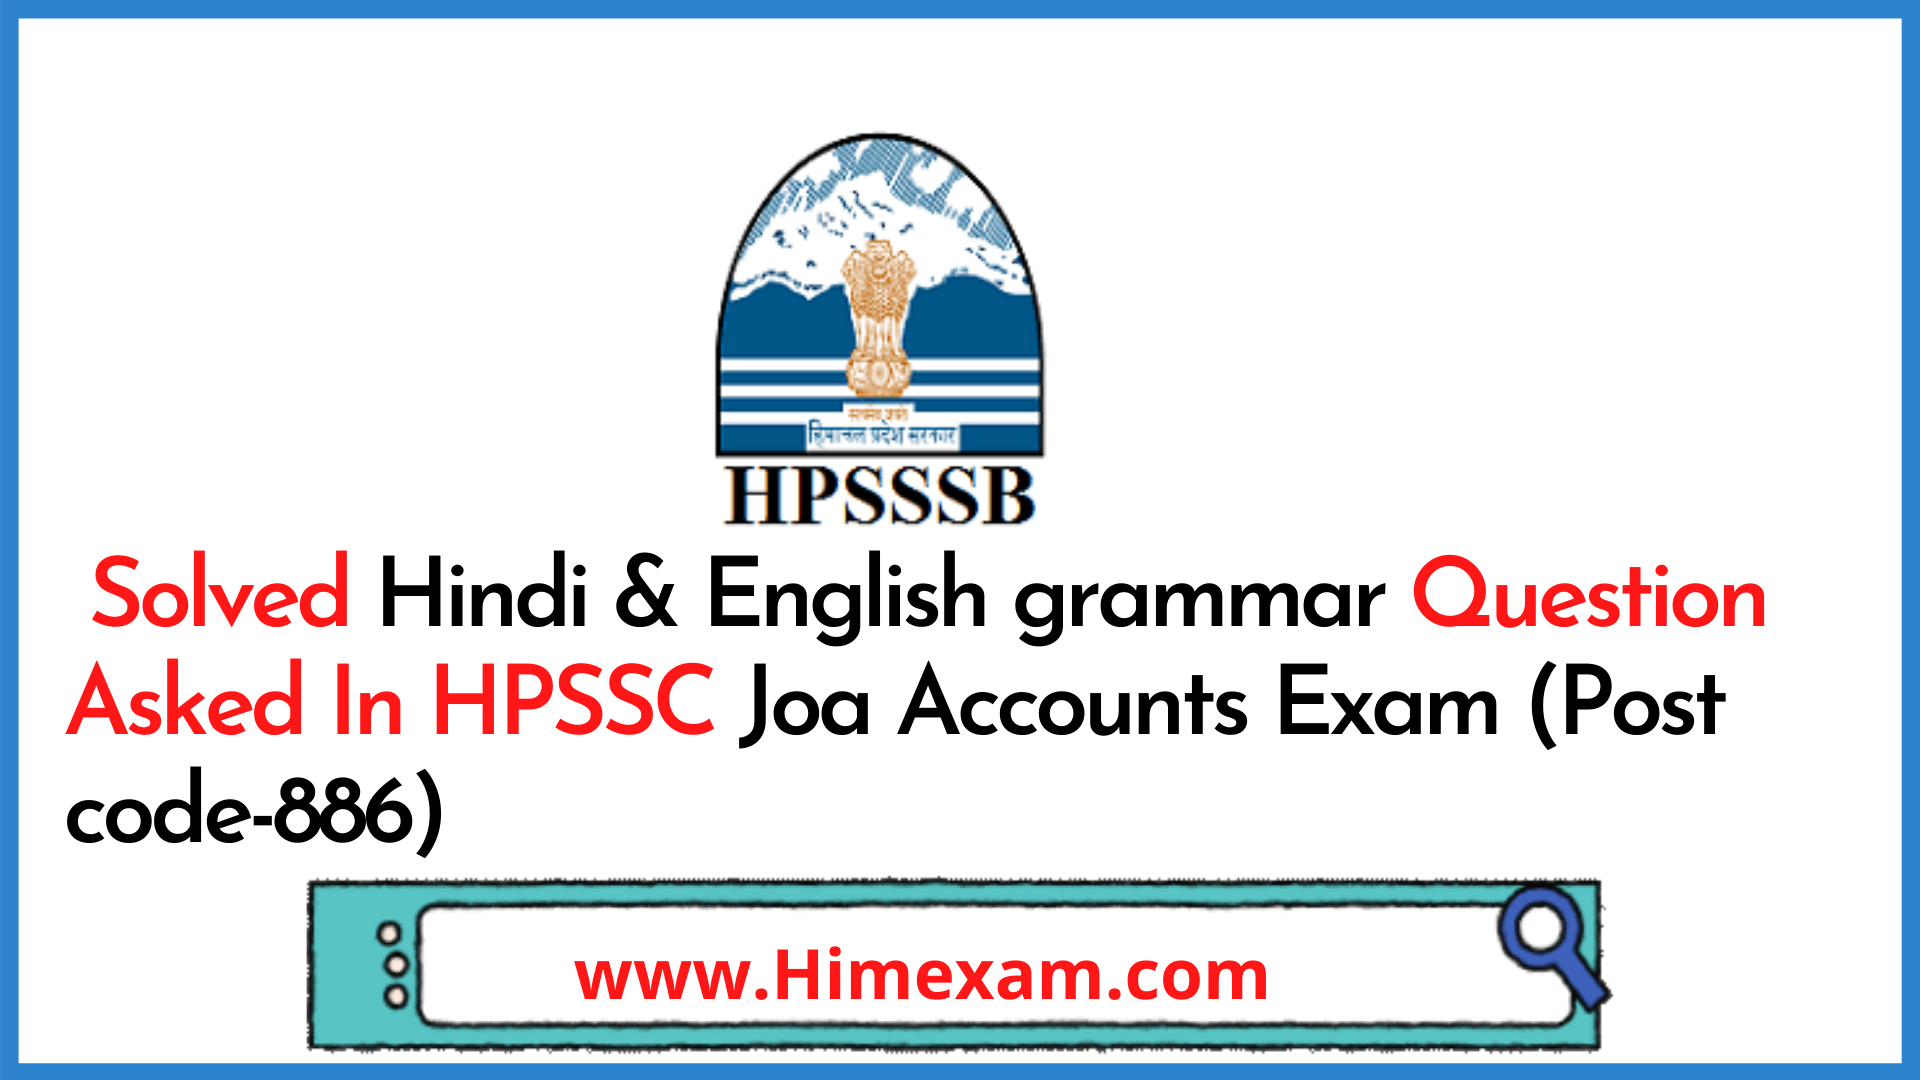 Solved Hindi & English grammar Question Asked In HPSSC Joa Accounts Exam (Post code-886)